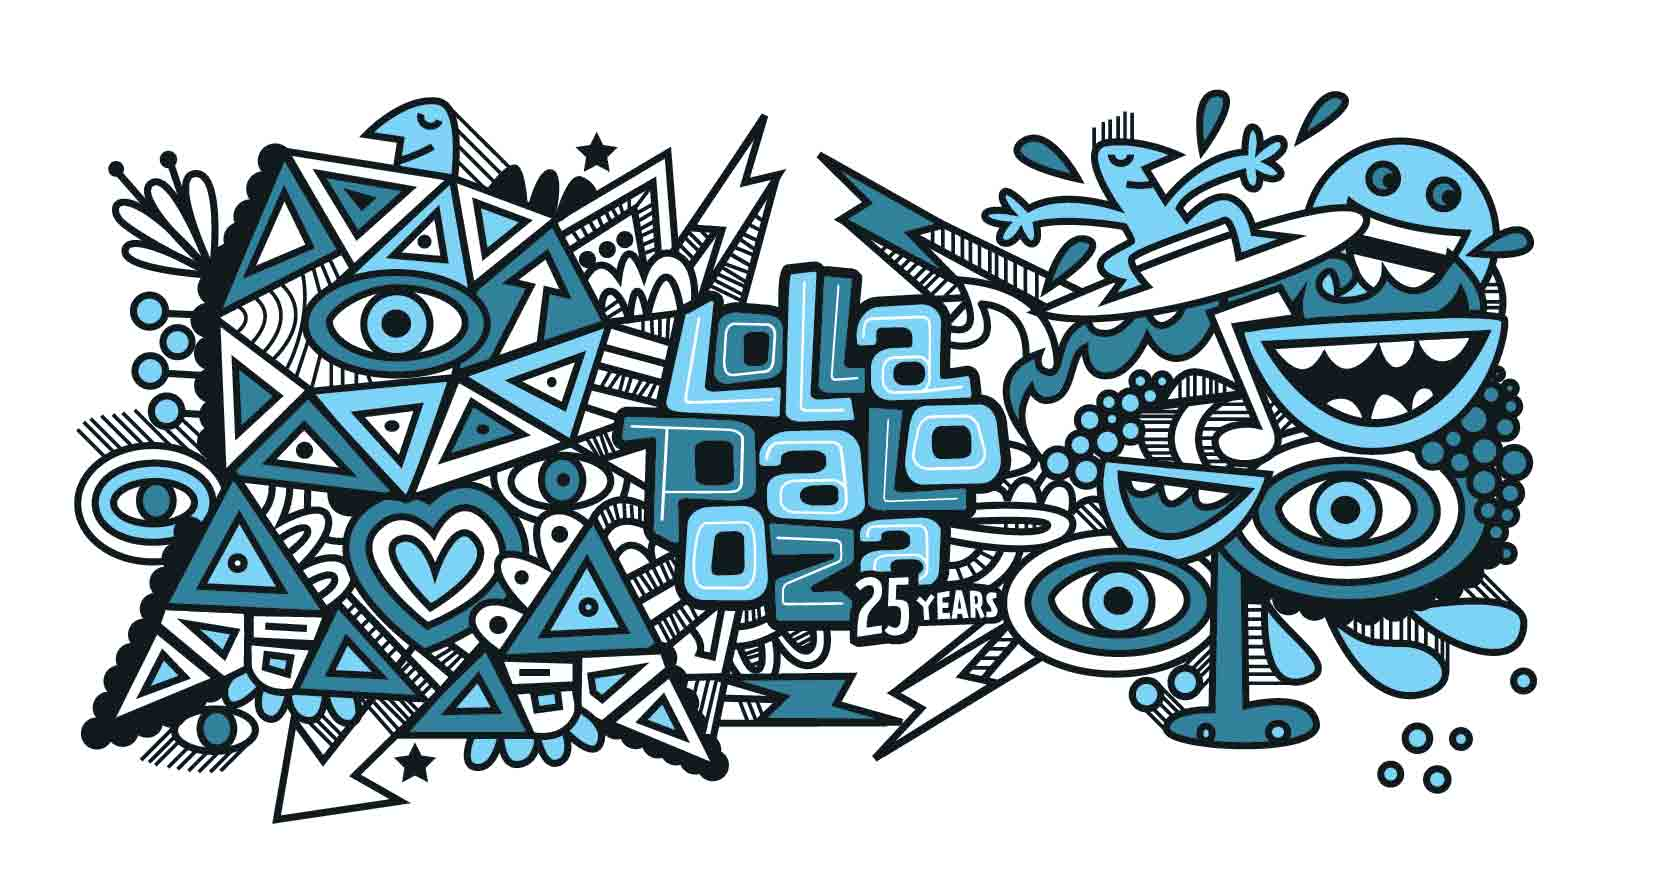 Blue Lollapalooza Graphic Line-Camelbak Bottle Design